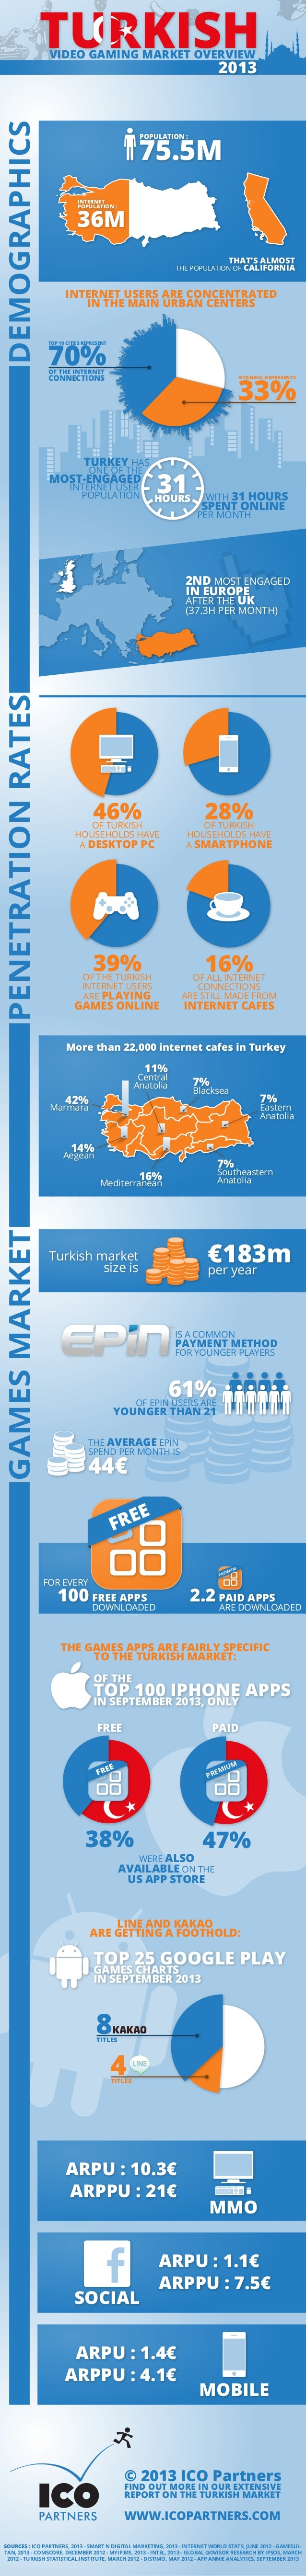 TURKISH VIDEO GAMING MARKET OVERVIEW  DEMOGRAPHICS  2013  75.5M POPULATION :  INTERNET POPULATION :  36M THAT'S ALMOST THE...